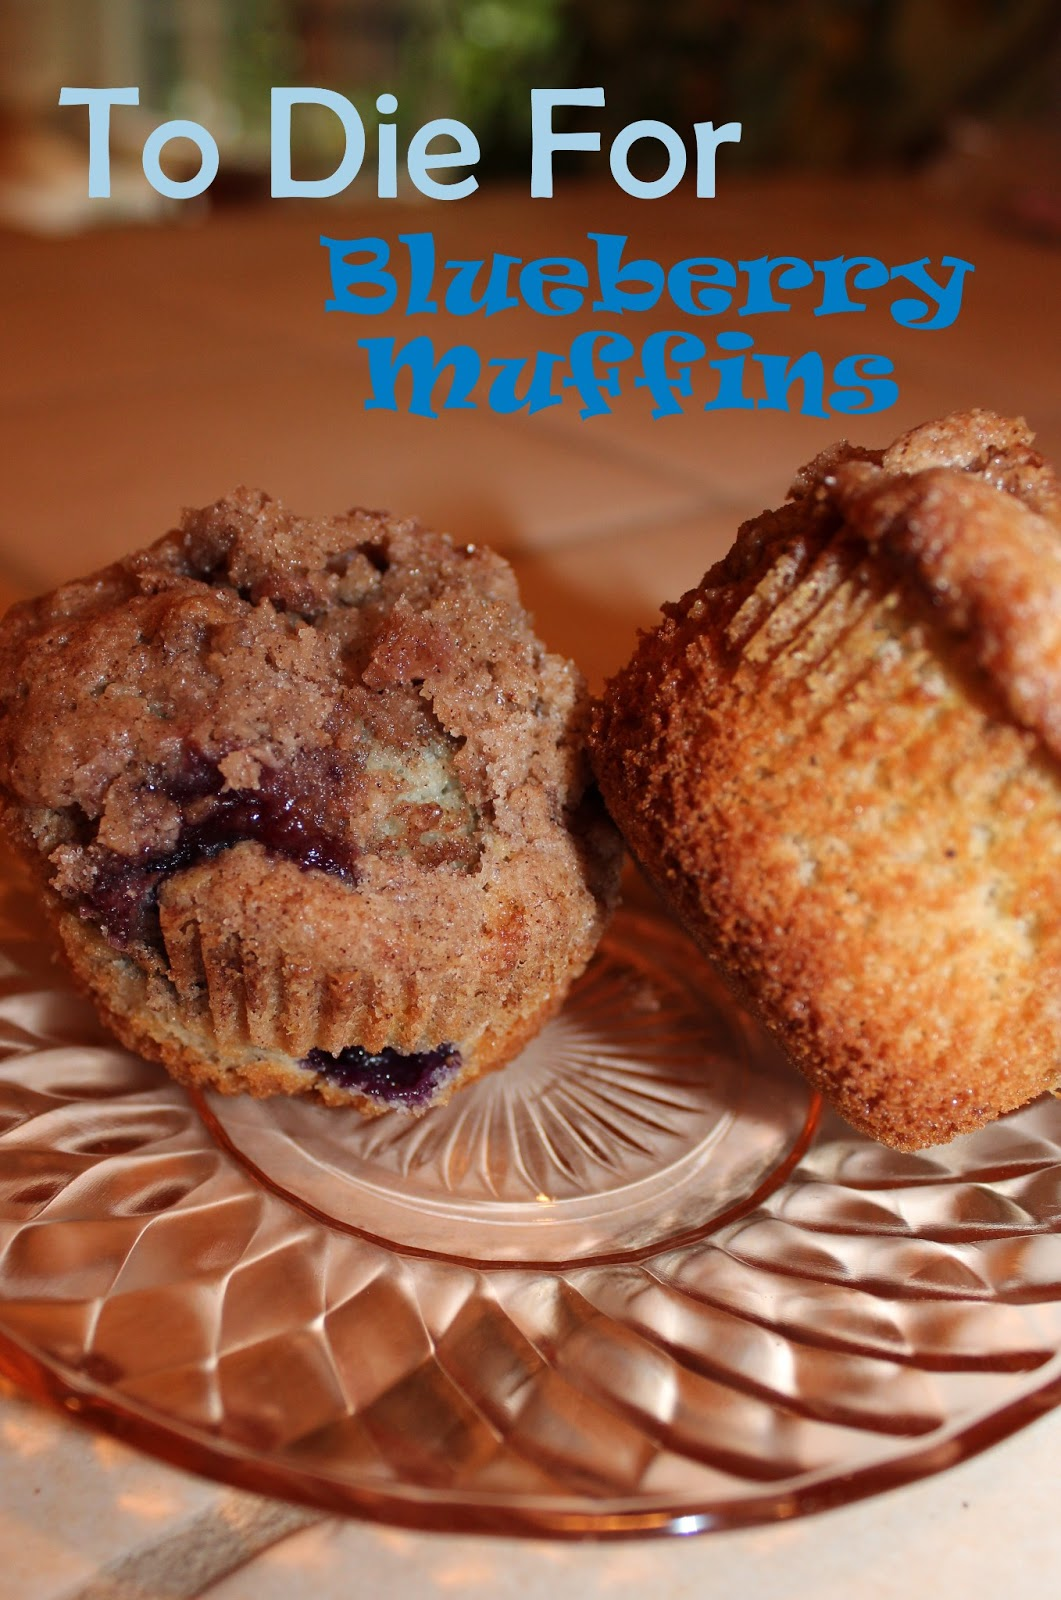 Harris Sisters GirlTalk: To Die For Blueberry Muffins